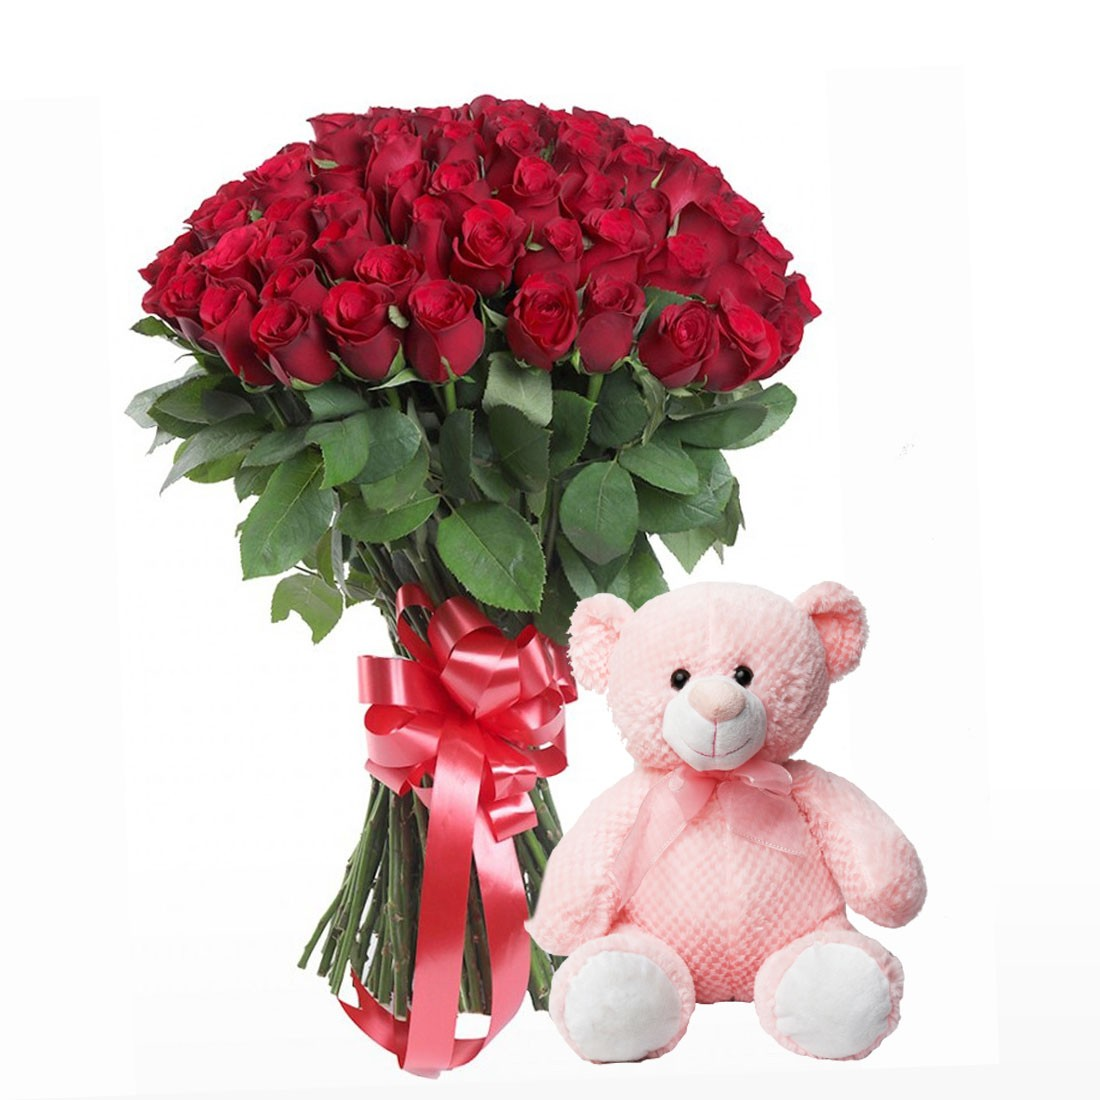 100 Red Roses Bunch With Teddy Bear